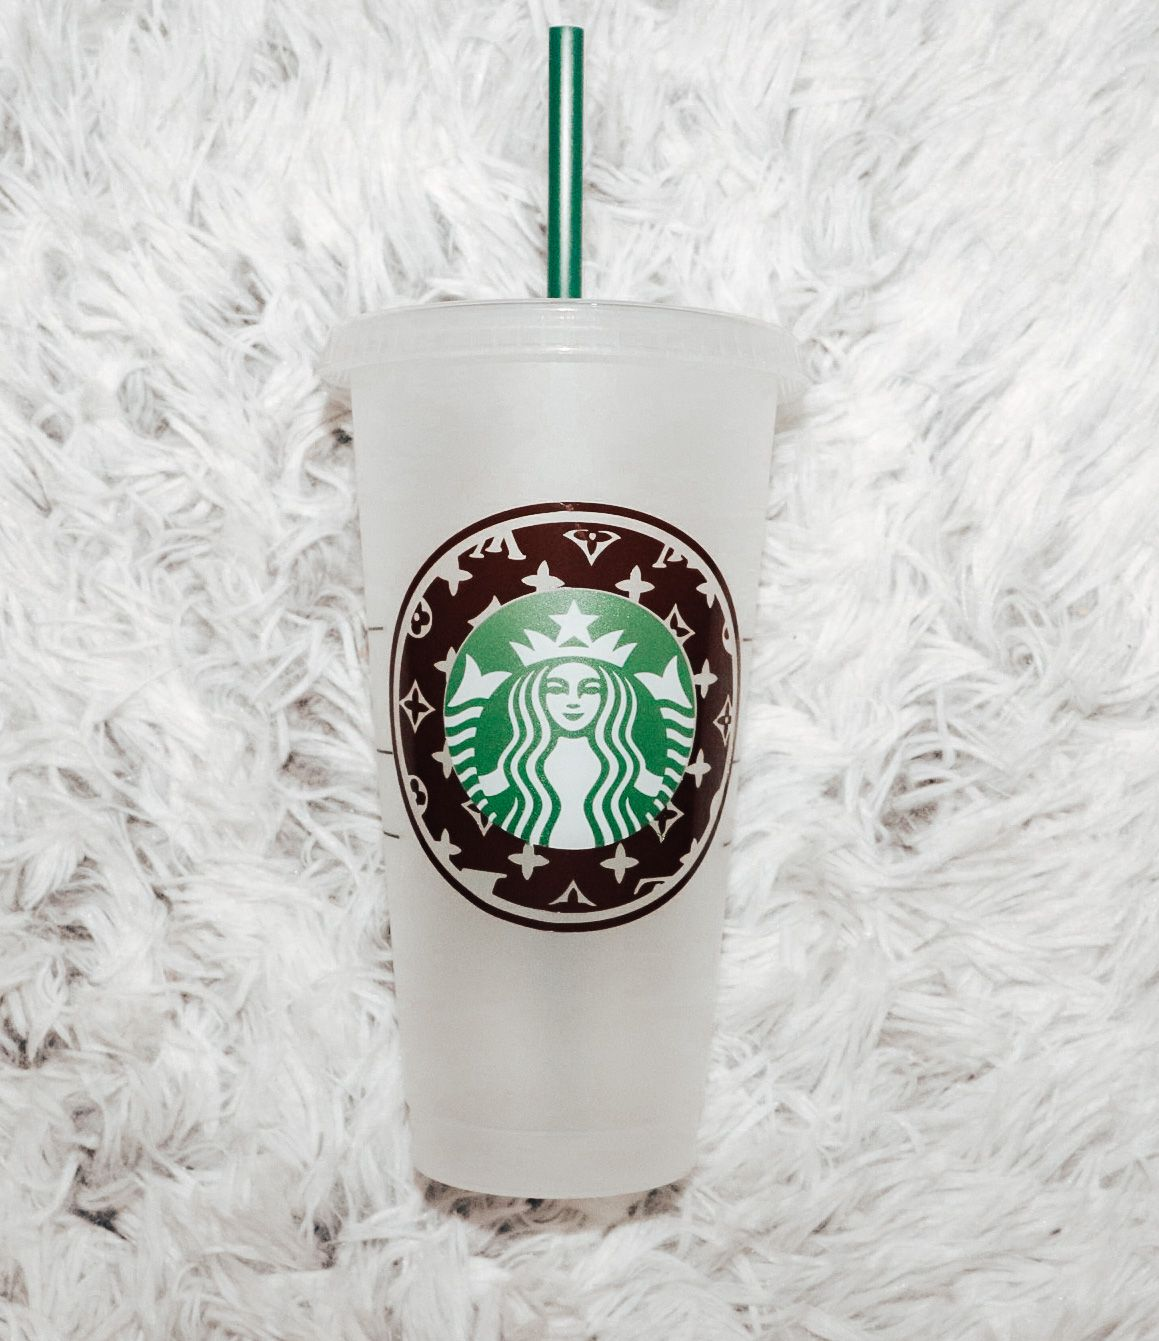 Louis Vuitton Starbucks Cup in 2020 Starbucks coffee cup